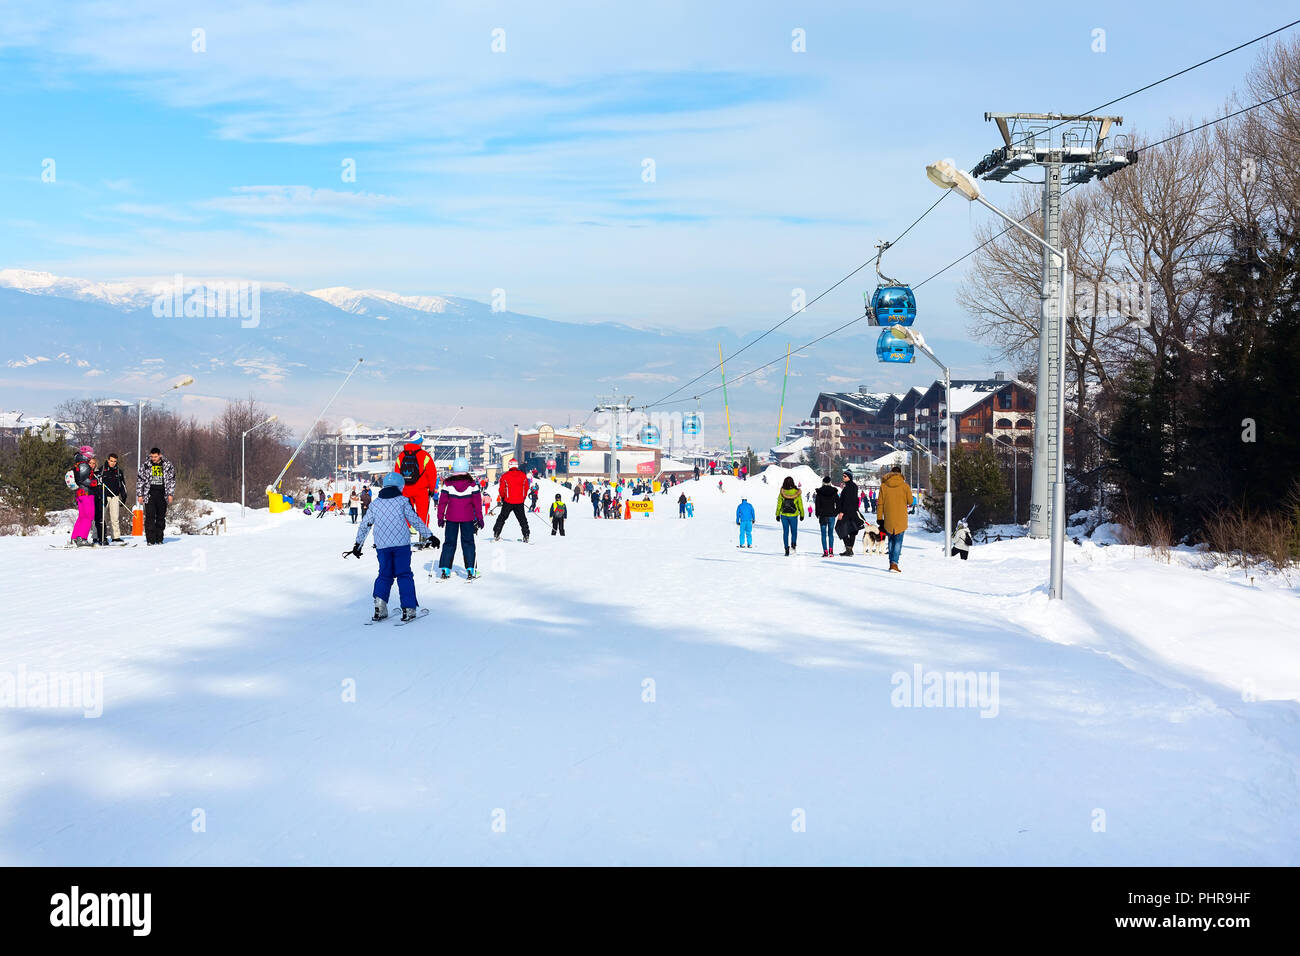 Bansko, Bulgaria - January 13, 2017: Winter ski resort Bansko, attractions, people walking and skiing and mountains view - Stock Image